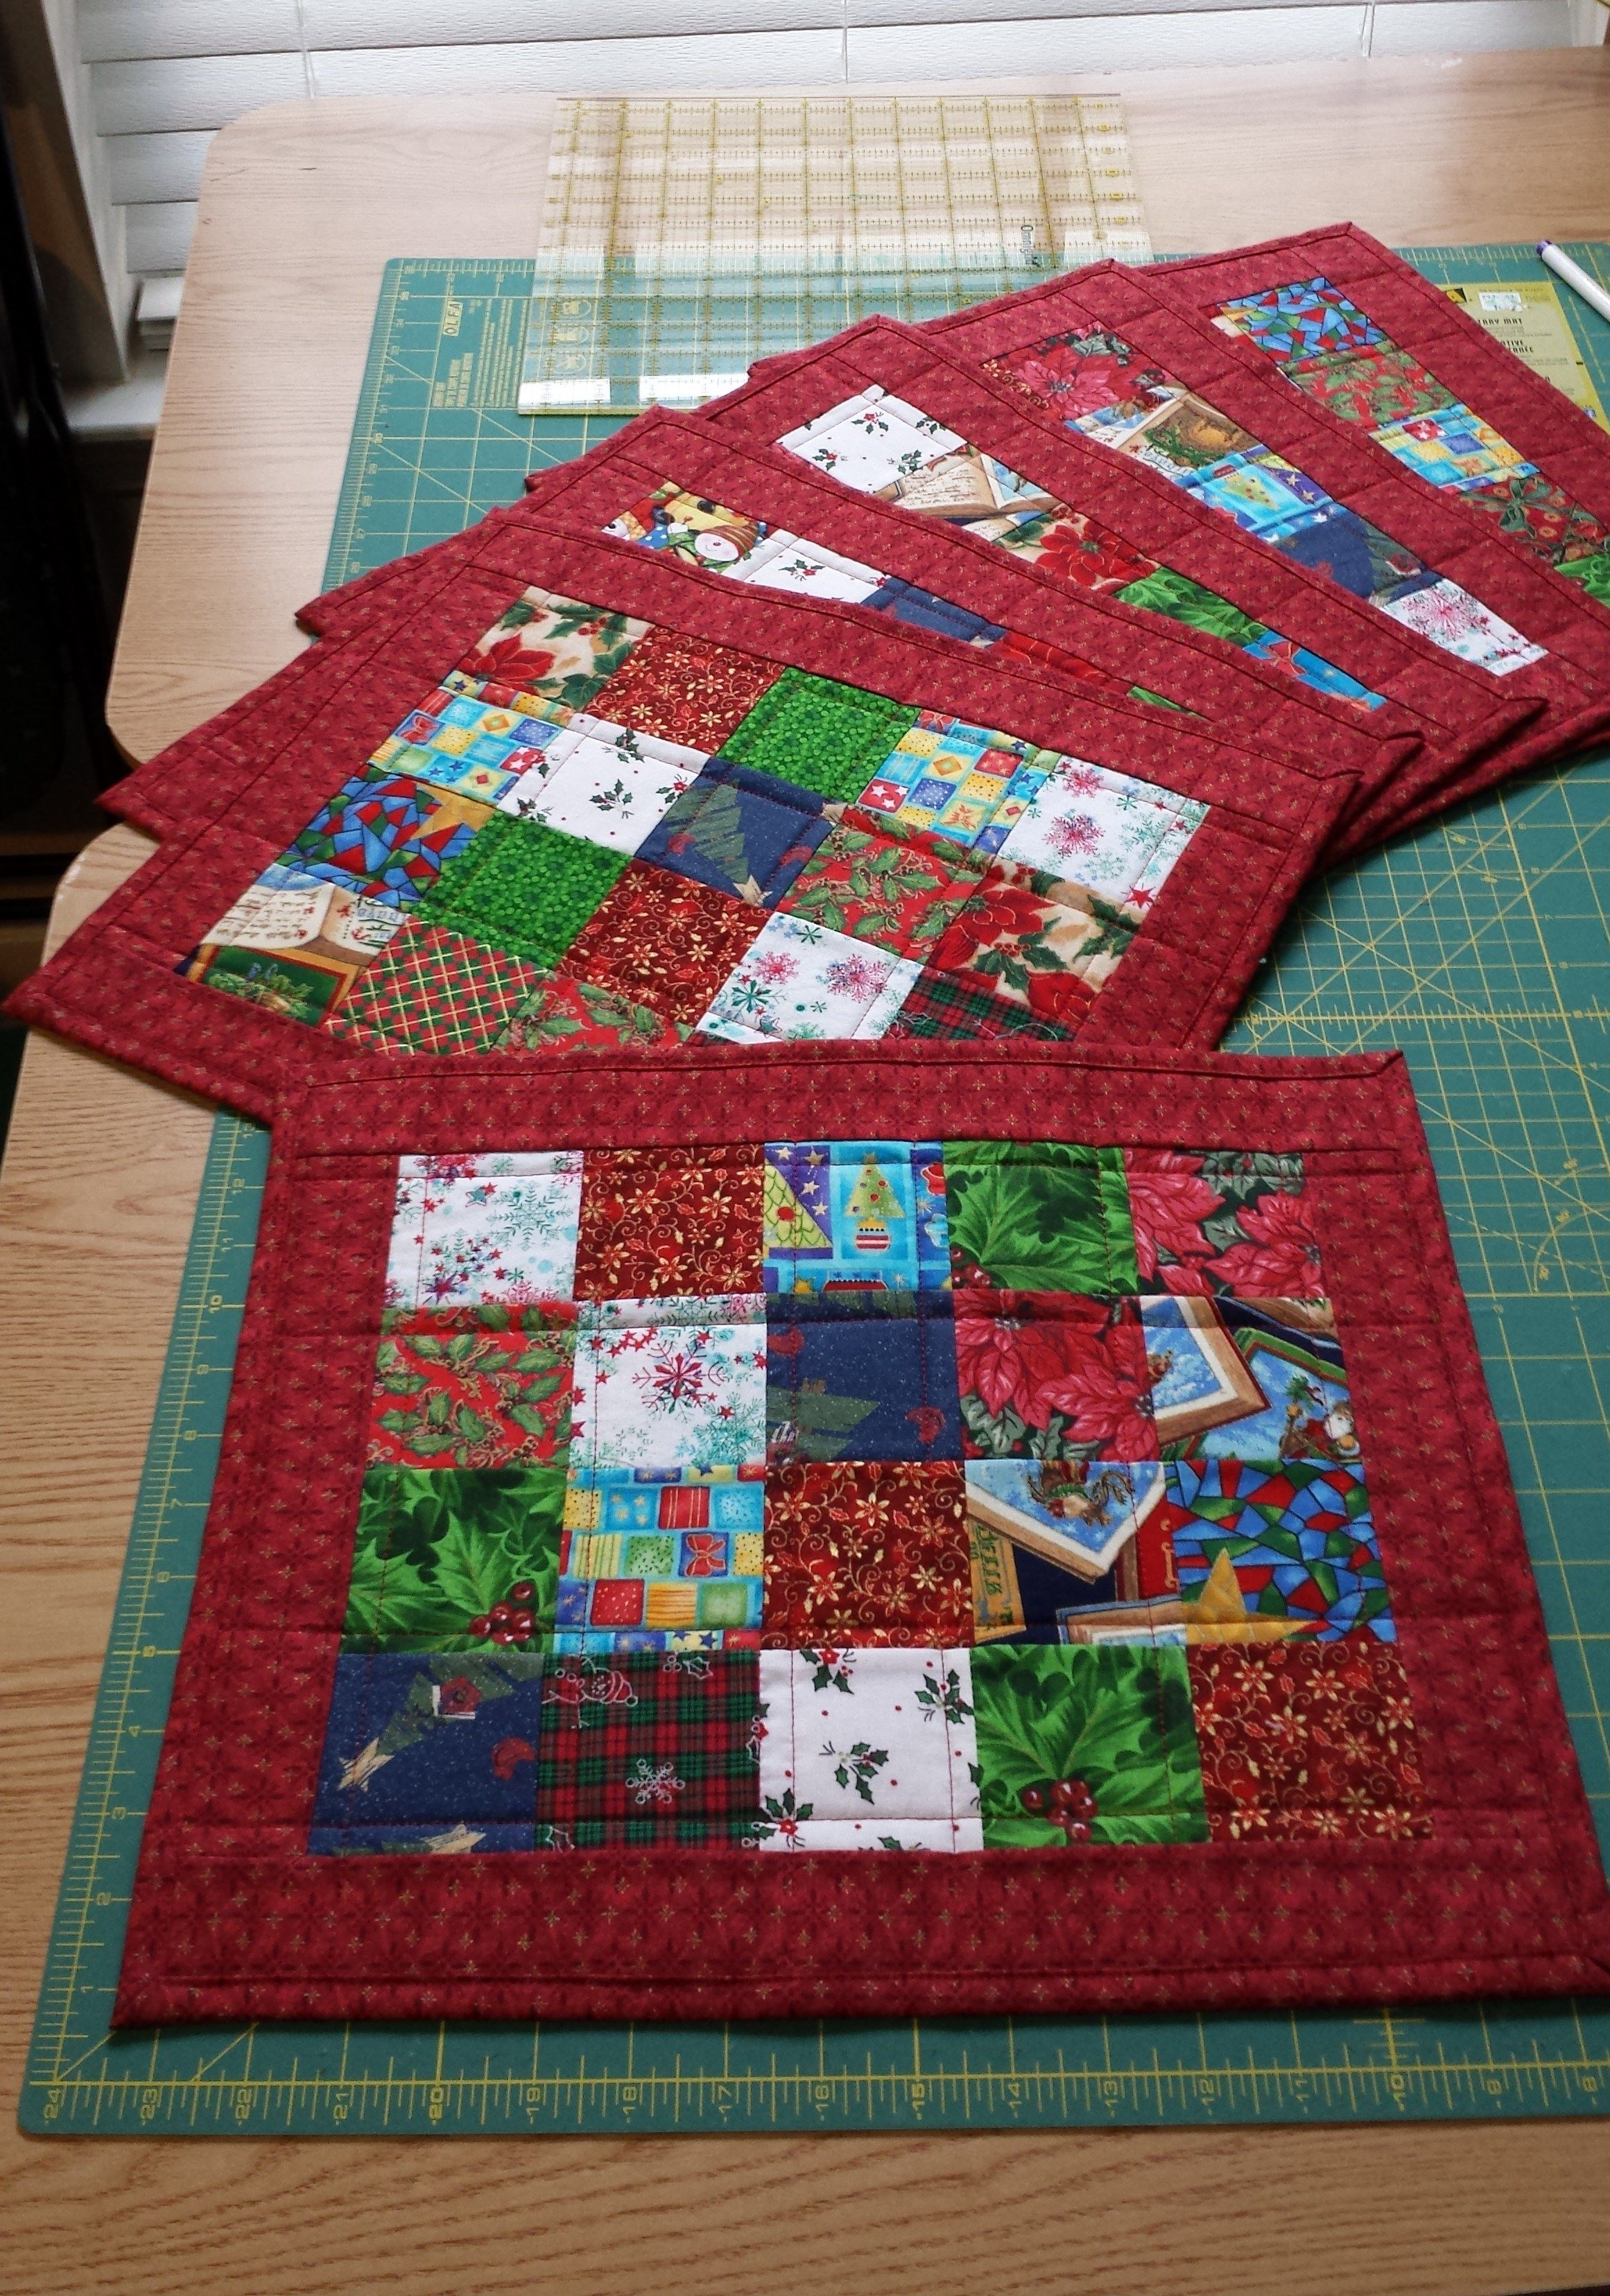 Quilted Christmas Placemat Patterns : quilted, christmas, placemat, patterns, Scrappy, Christmas, Quilted, Placemats, Patterns,, Placemat, Place